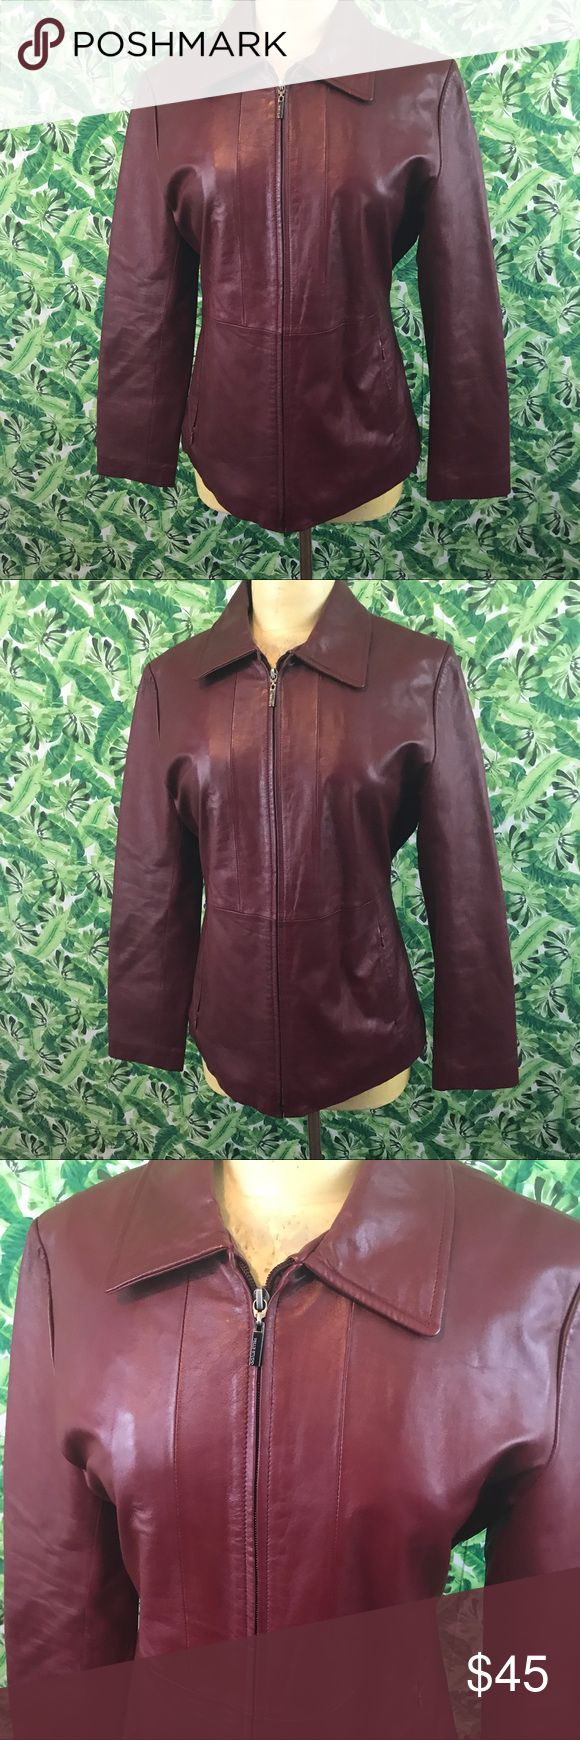 Wilsons leather Pele studio maroon jacket Medium 100% leather maroon wilsons pele studios jacket. Size medium. Previously owned no tears holes or stains. Bust measures 20 inches across armpit to armpit 16 across at waist Wilsons Leather Jackets & Coats